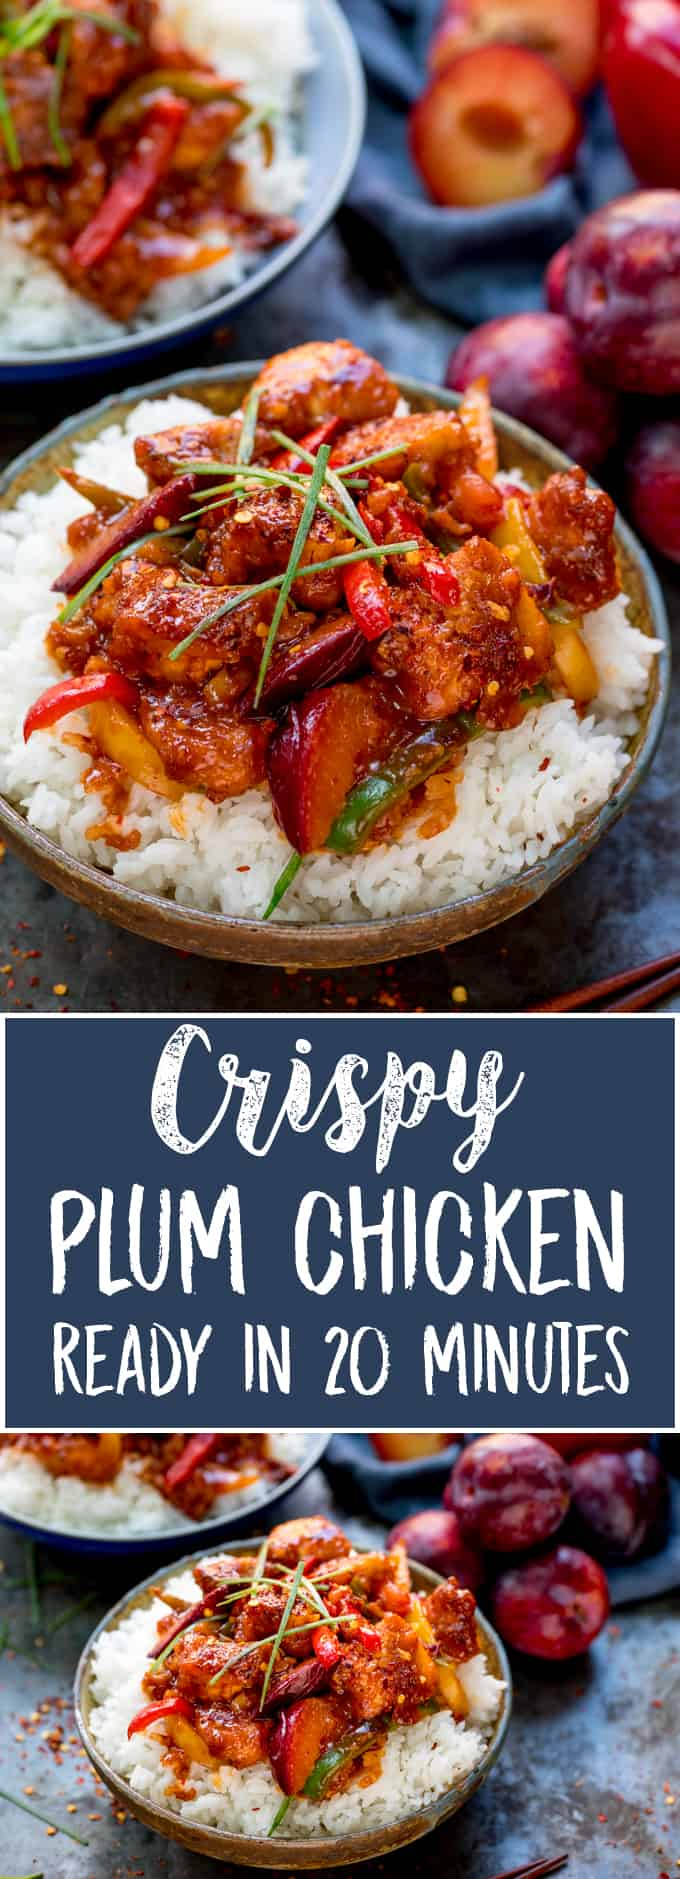 A spicy chicken dinner that makes a great takeout alternative! My Crispy Chinese Plum Chicken with Sticky Chilli Sauce is super-quick to make (20 minutes!).  Also, check out my trick to save on the washing up! #chinesechicken #plumchicken #crispychicken #chickenstirfry #chilechicken